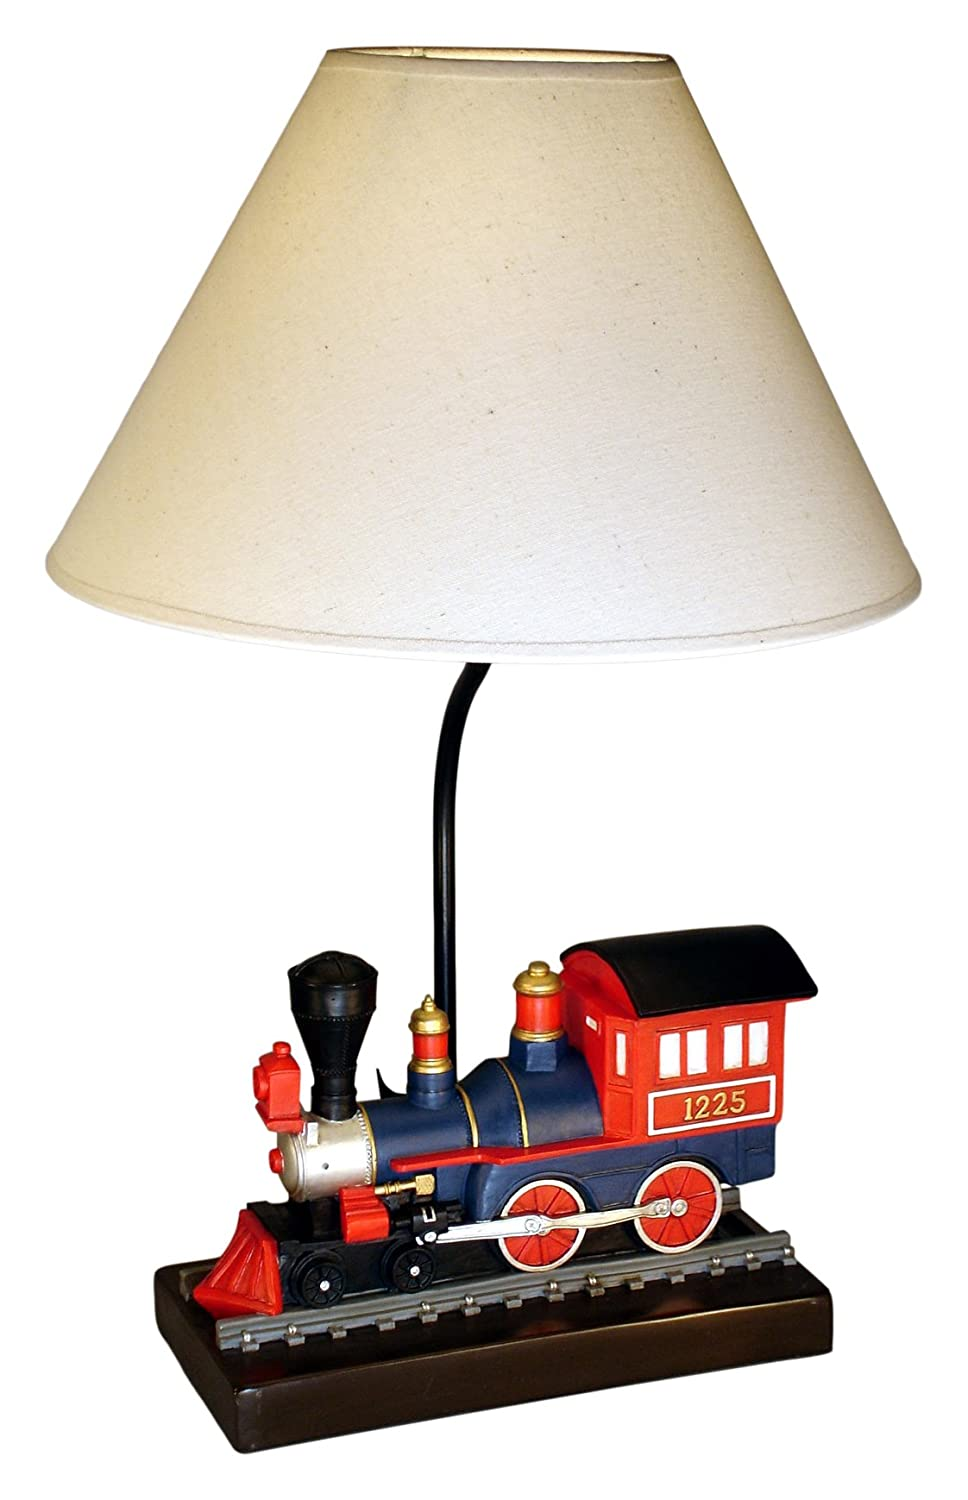 Amazon judithedwards 1727 train lamp home kitchen arubaitofo Image collections